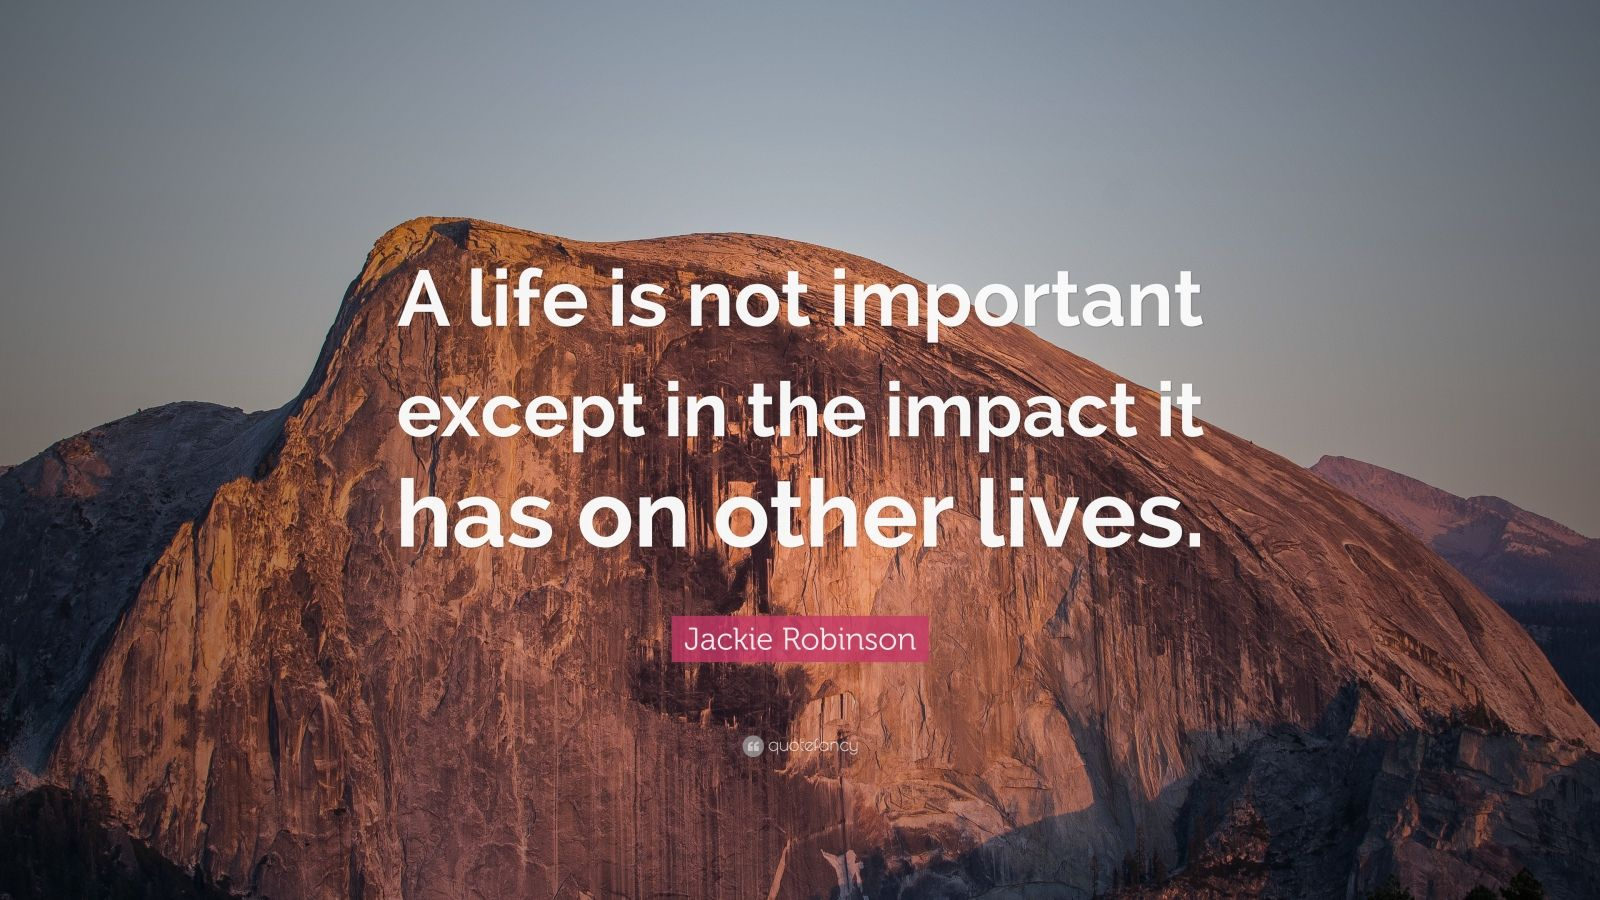 Beautiful Life Wallpapers With Quotes Jackie Robinson Quote A Life Is Not Important Except In